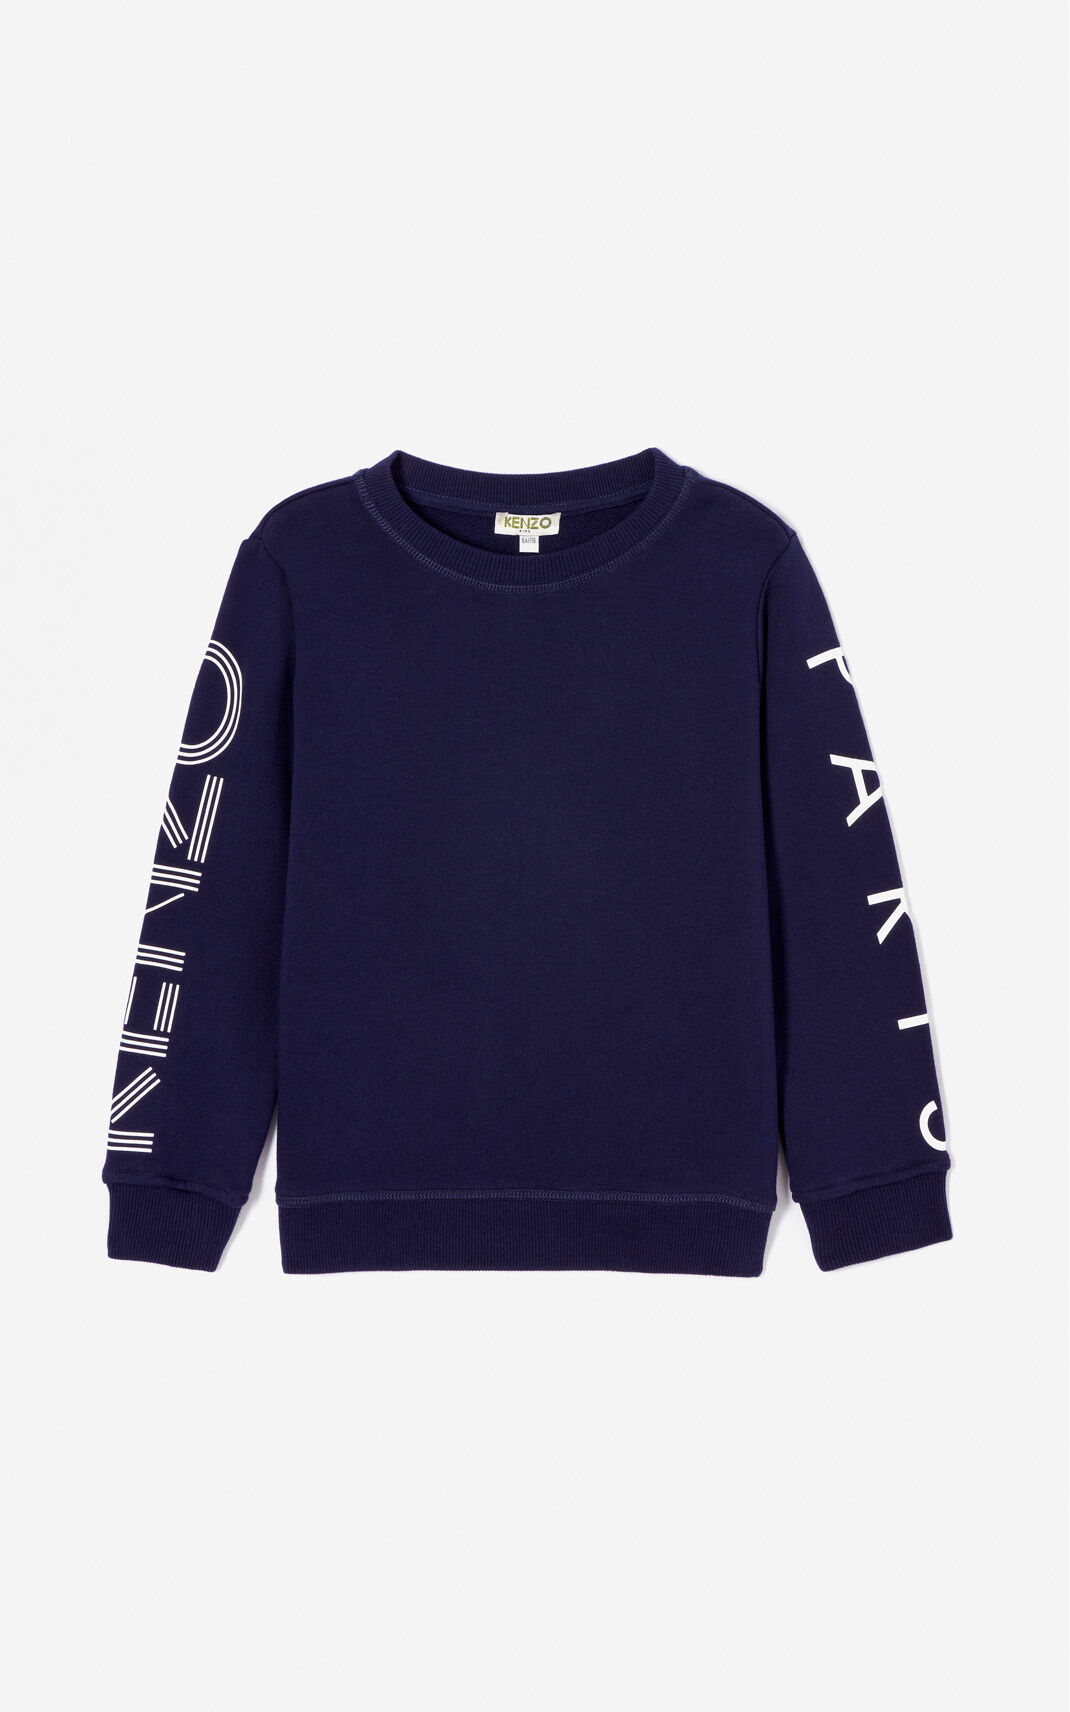 NAVY BLUE KENZO Logo sweatshirt for men